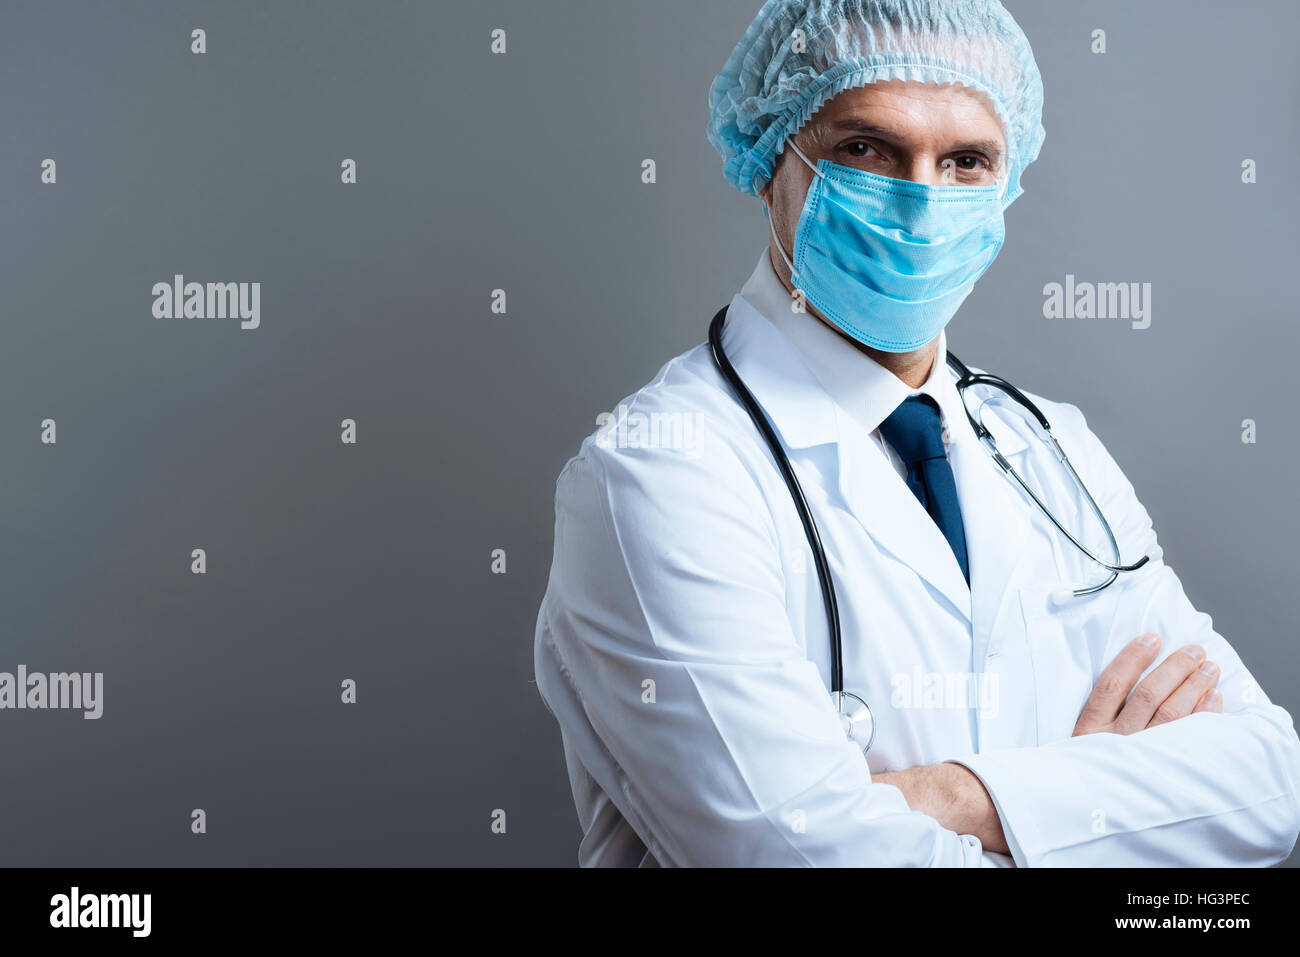 doctor surgical face mask